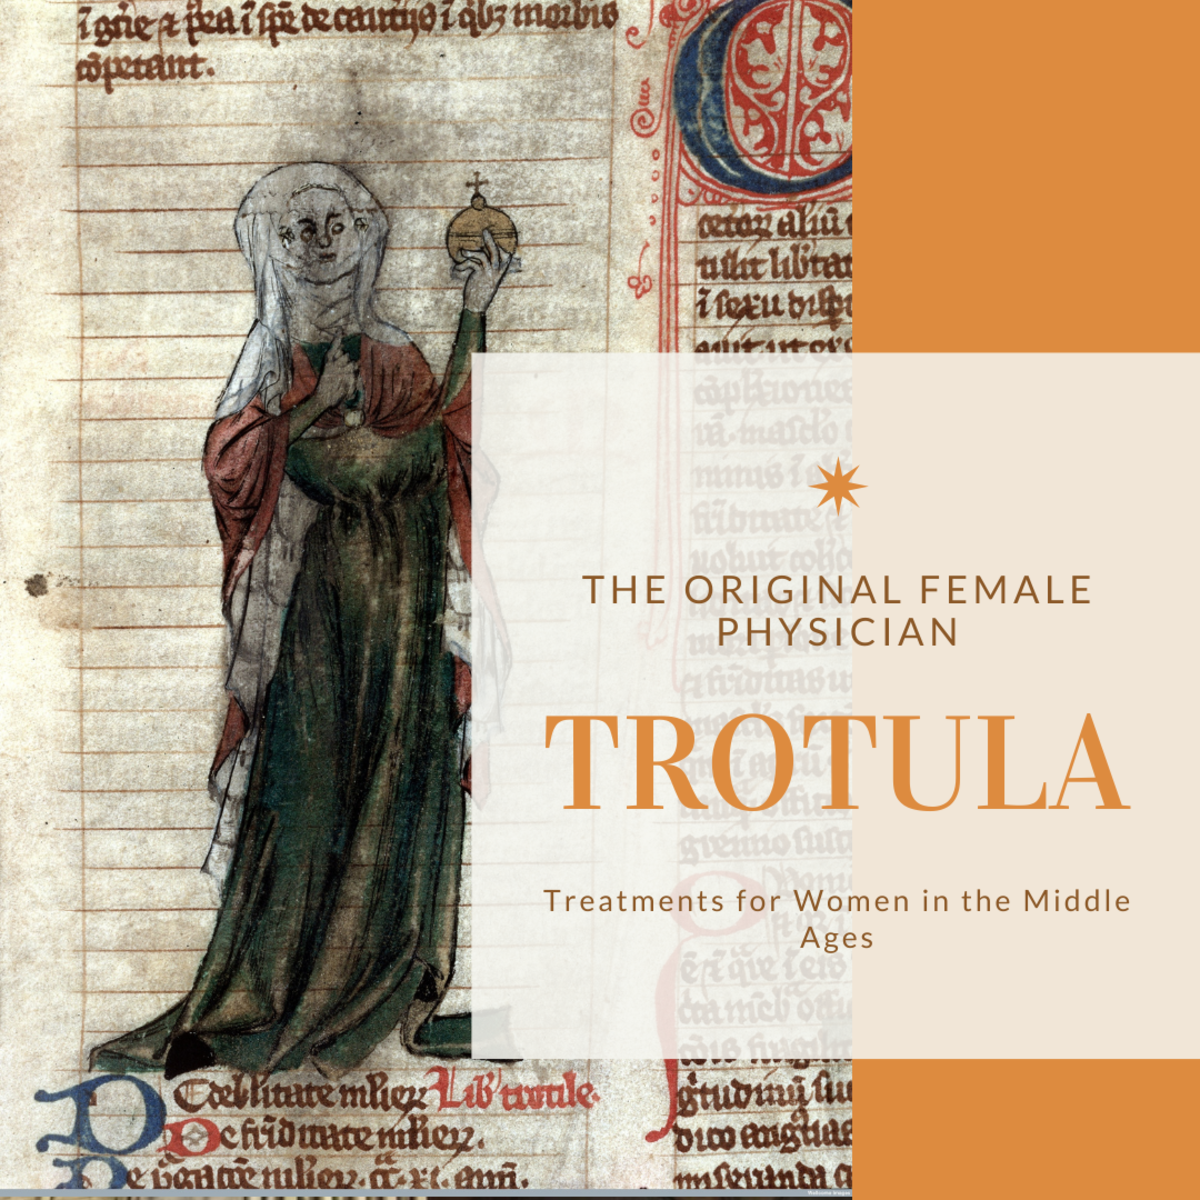 Trotula the Medieval Doctor: A History of Women's Health from the Middle Ages